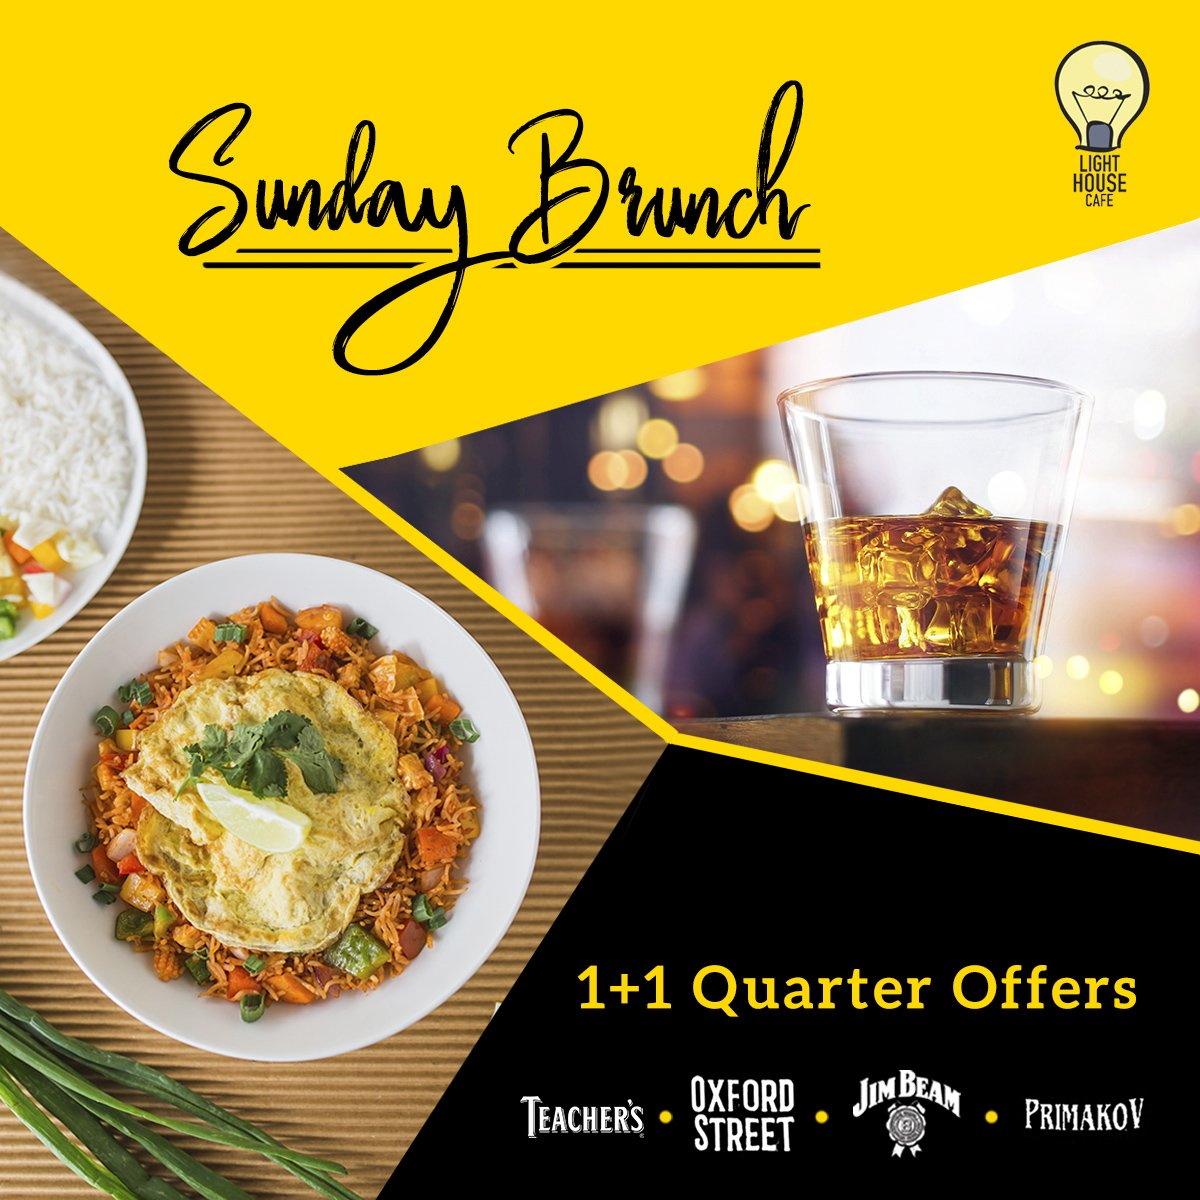 Make Sunday Brunch more fun with our 1 + 1 Quarter offers only at Light House Cafe Mumbai  #LHC #Worli #Mumbai #Zomato #Blogpost #bloggers #Weekday #CurlyTales #Weekends #Thingstodo #Mumbaifoodie #Foodgasm #mumbaifood #indianblogger #dailyfoodfeed #blogspot #Beer #BeerFest